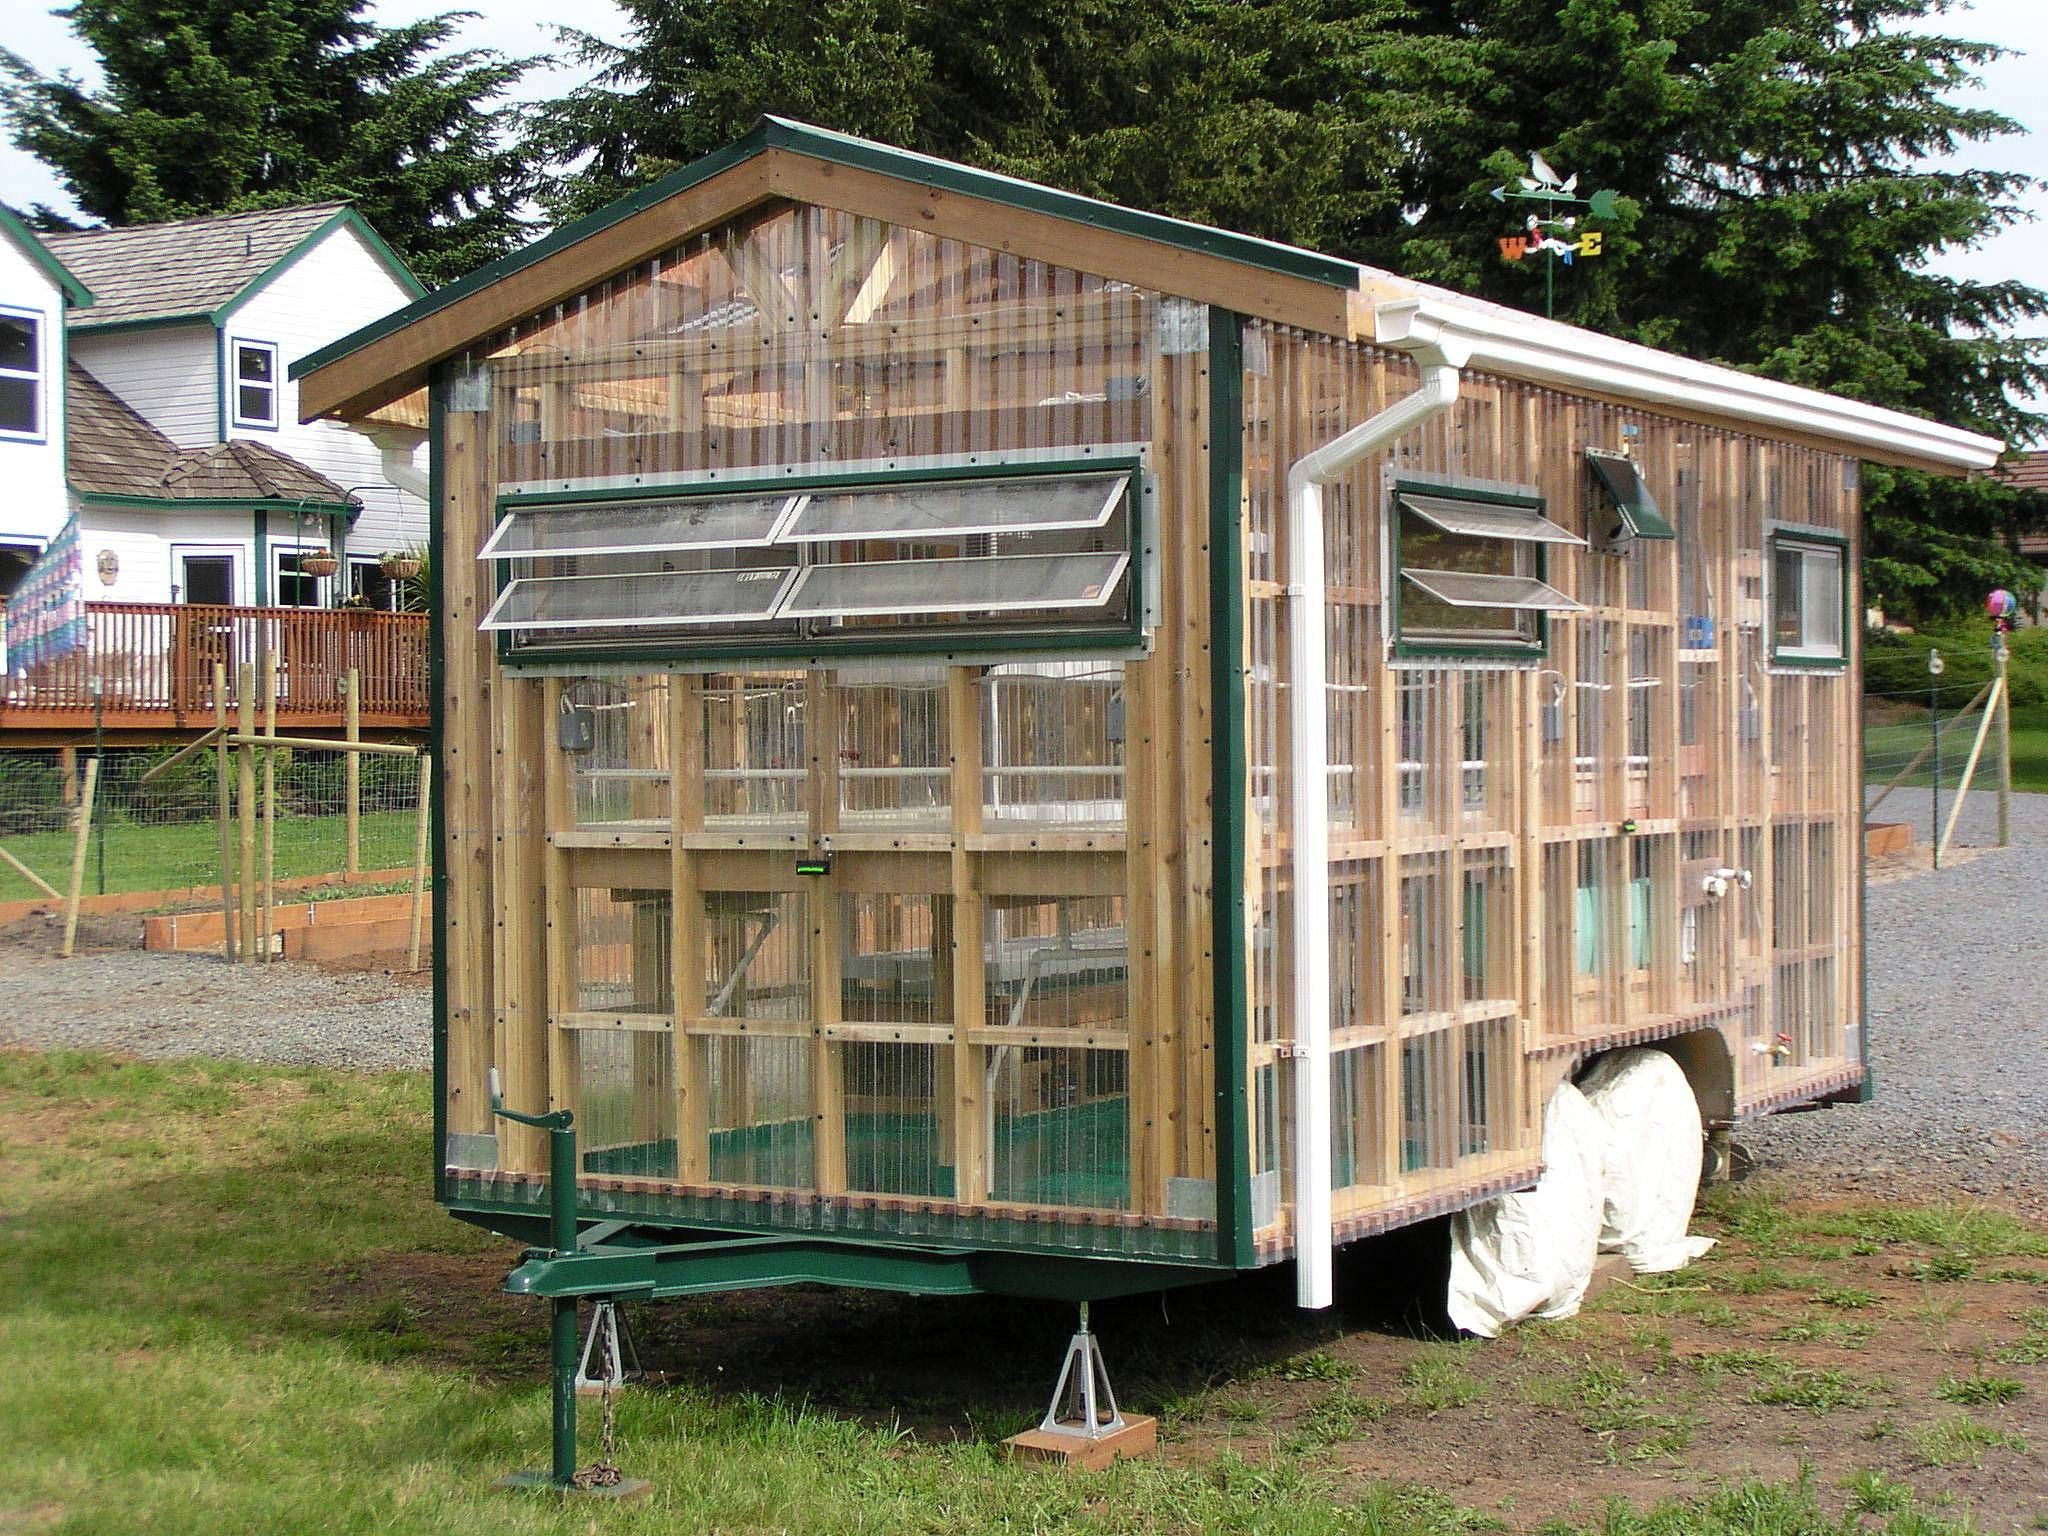 Showy Sheds These Garden Hideaways Are Packed With Creativity Oregonlive Com Greenhouse Outdoor Greenhouse Greenhouse Plans